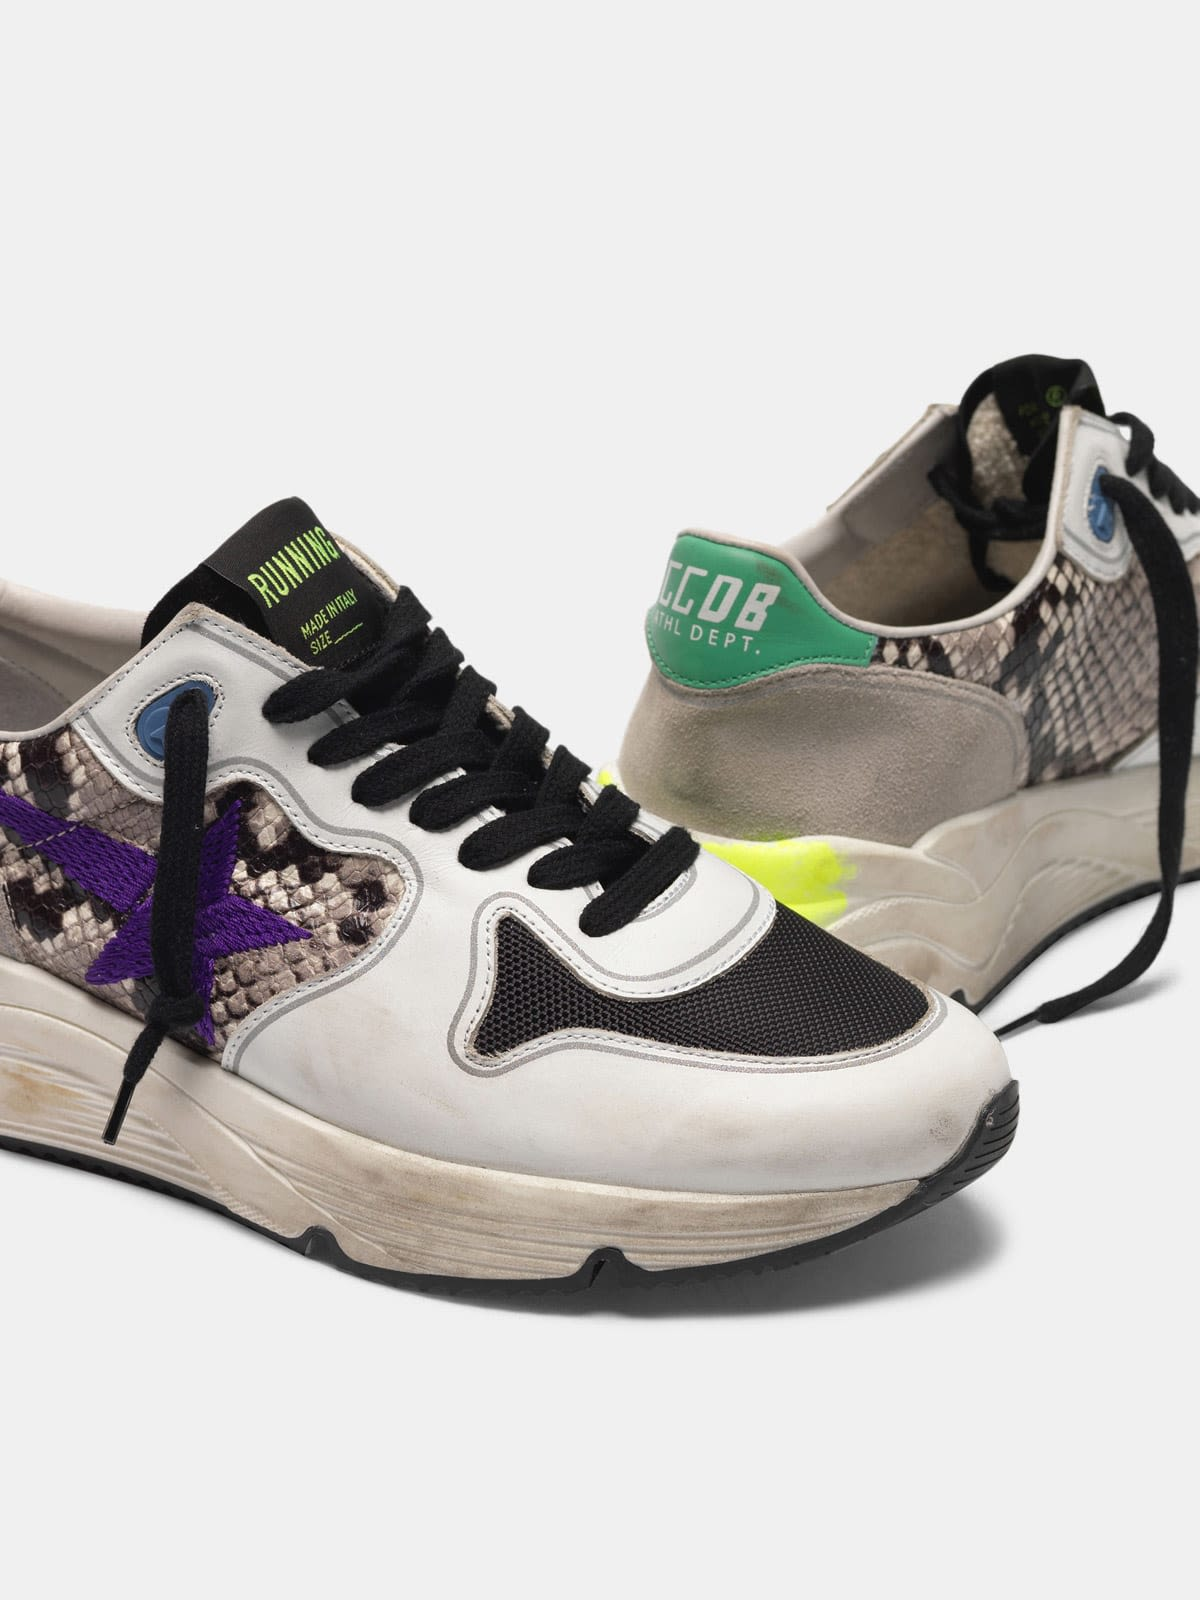 Running Sole sneakers in snakeskin print leather with purple embroidered star